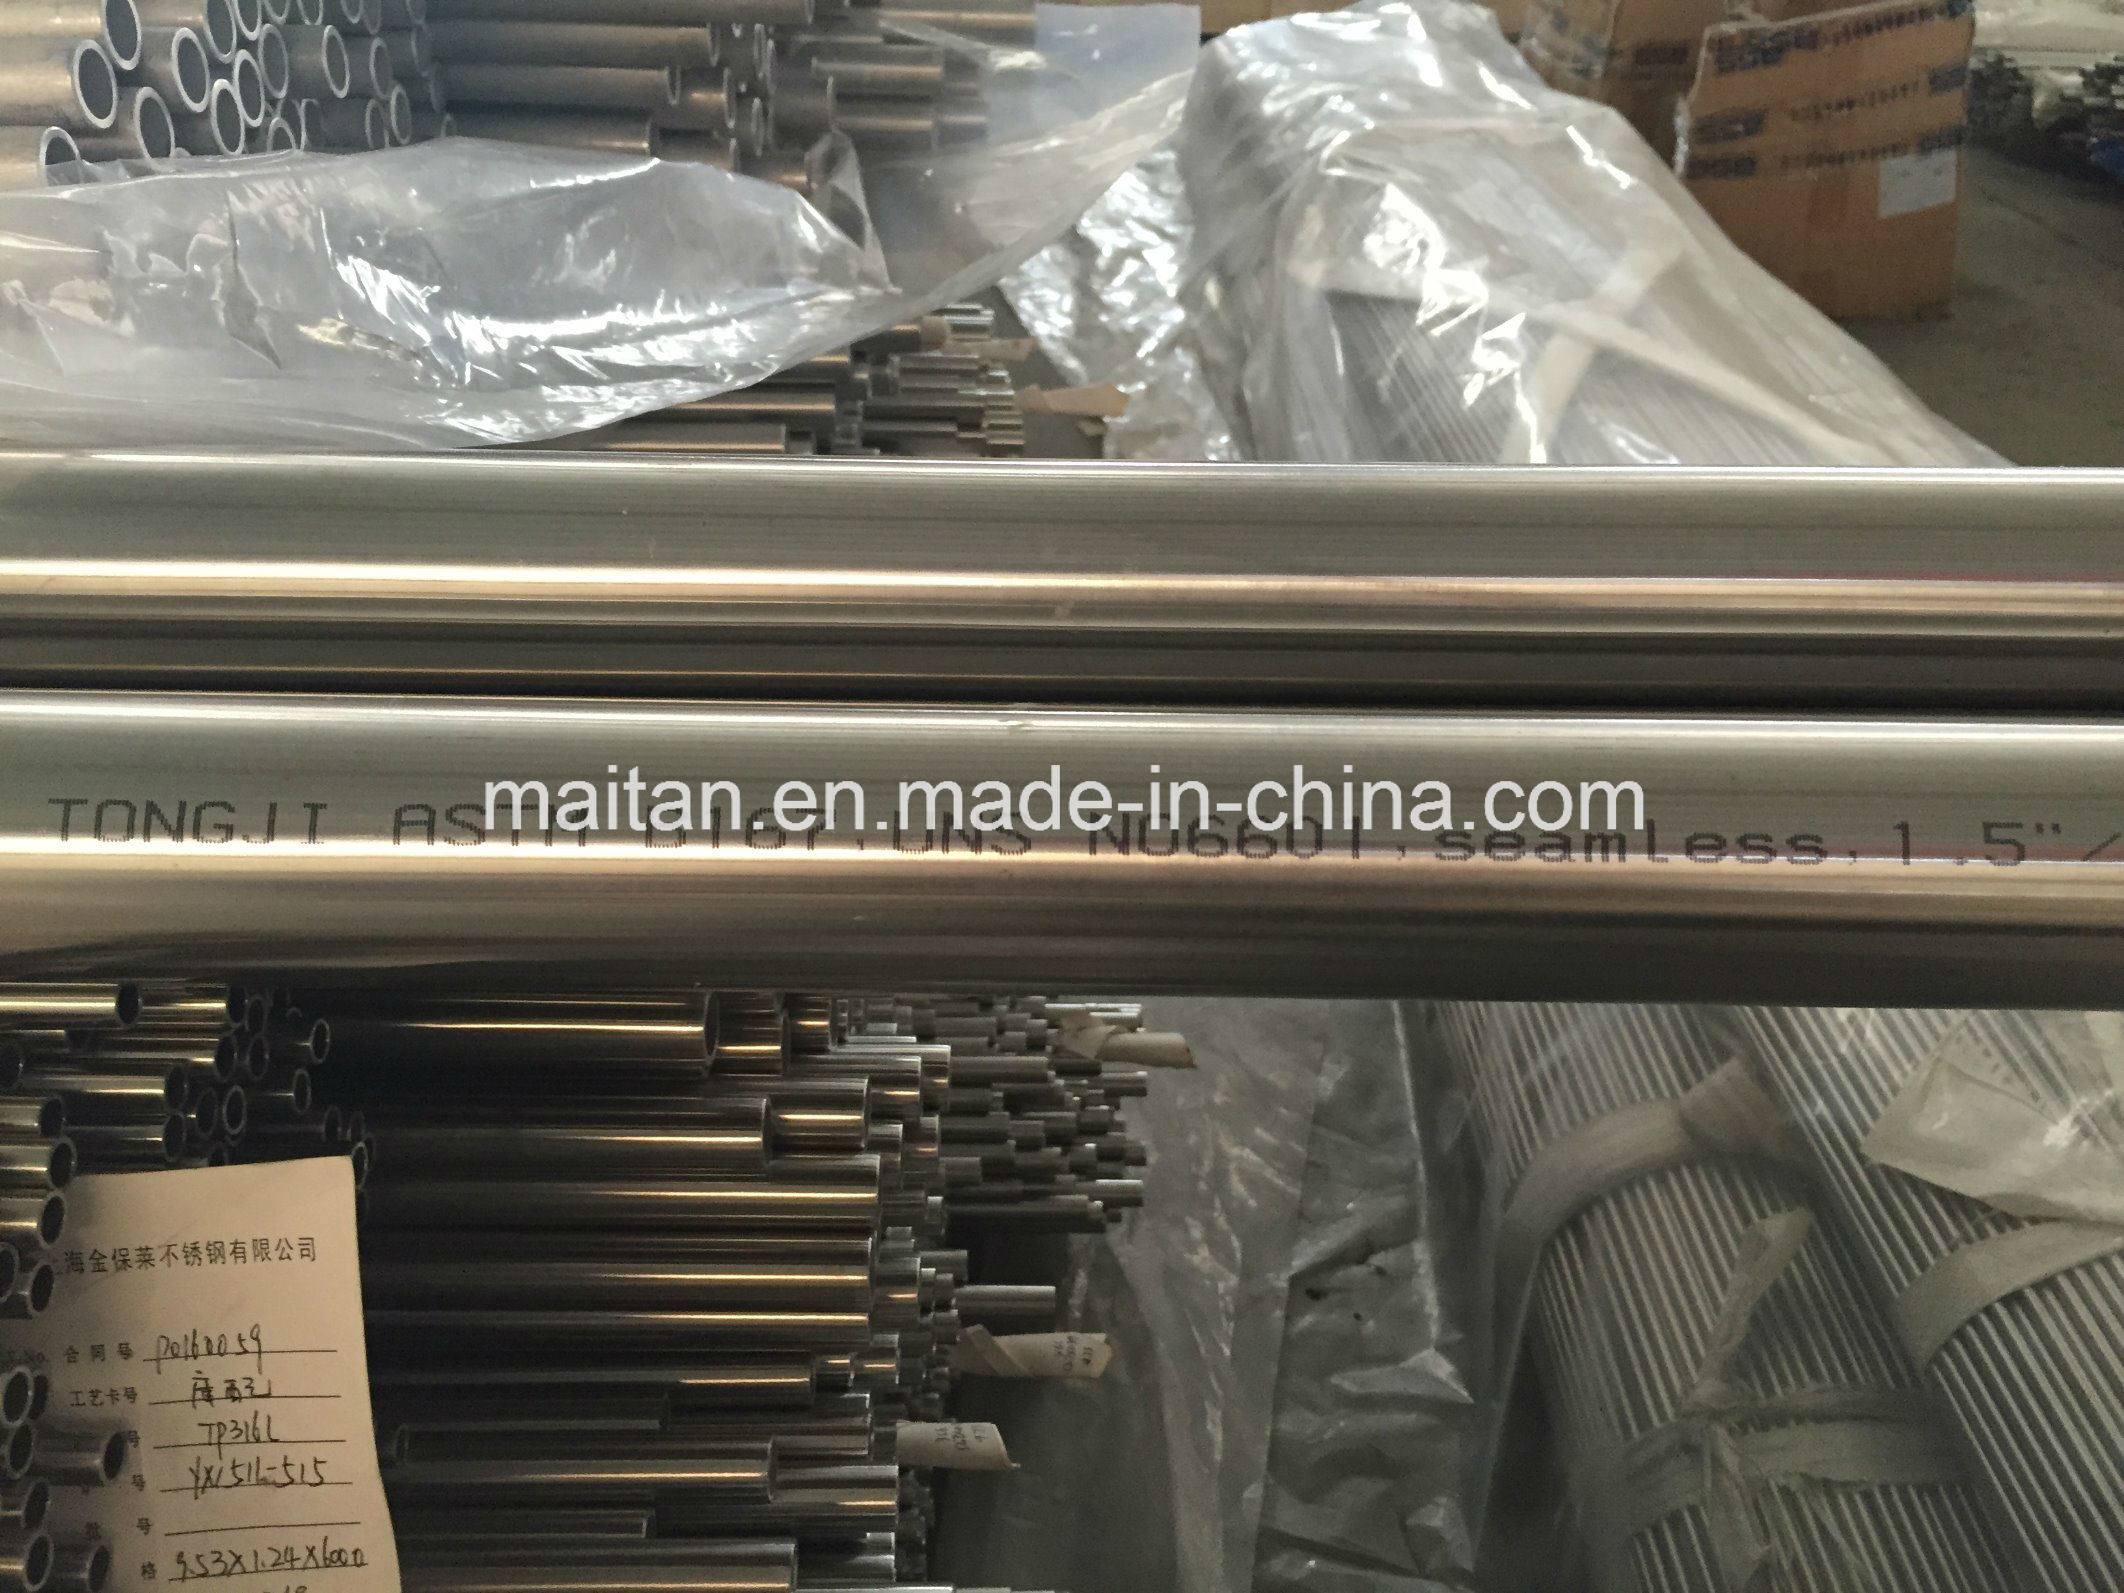 Hot Selling Nickel Alloy 600, 601, 625 Seamless Heat Exchanger Tube